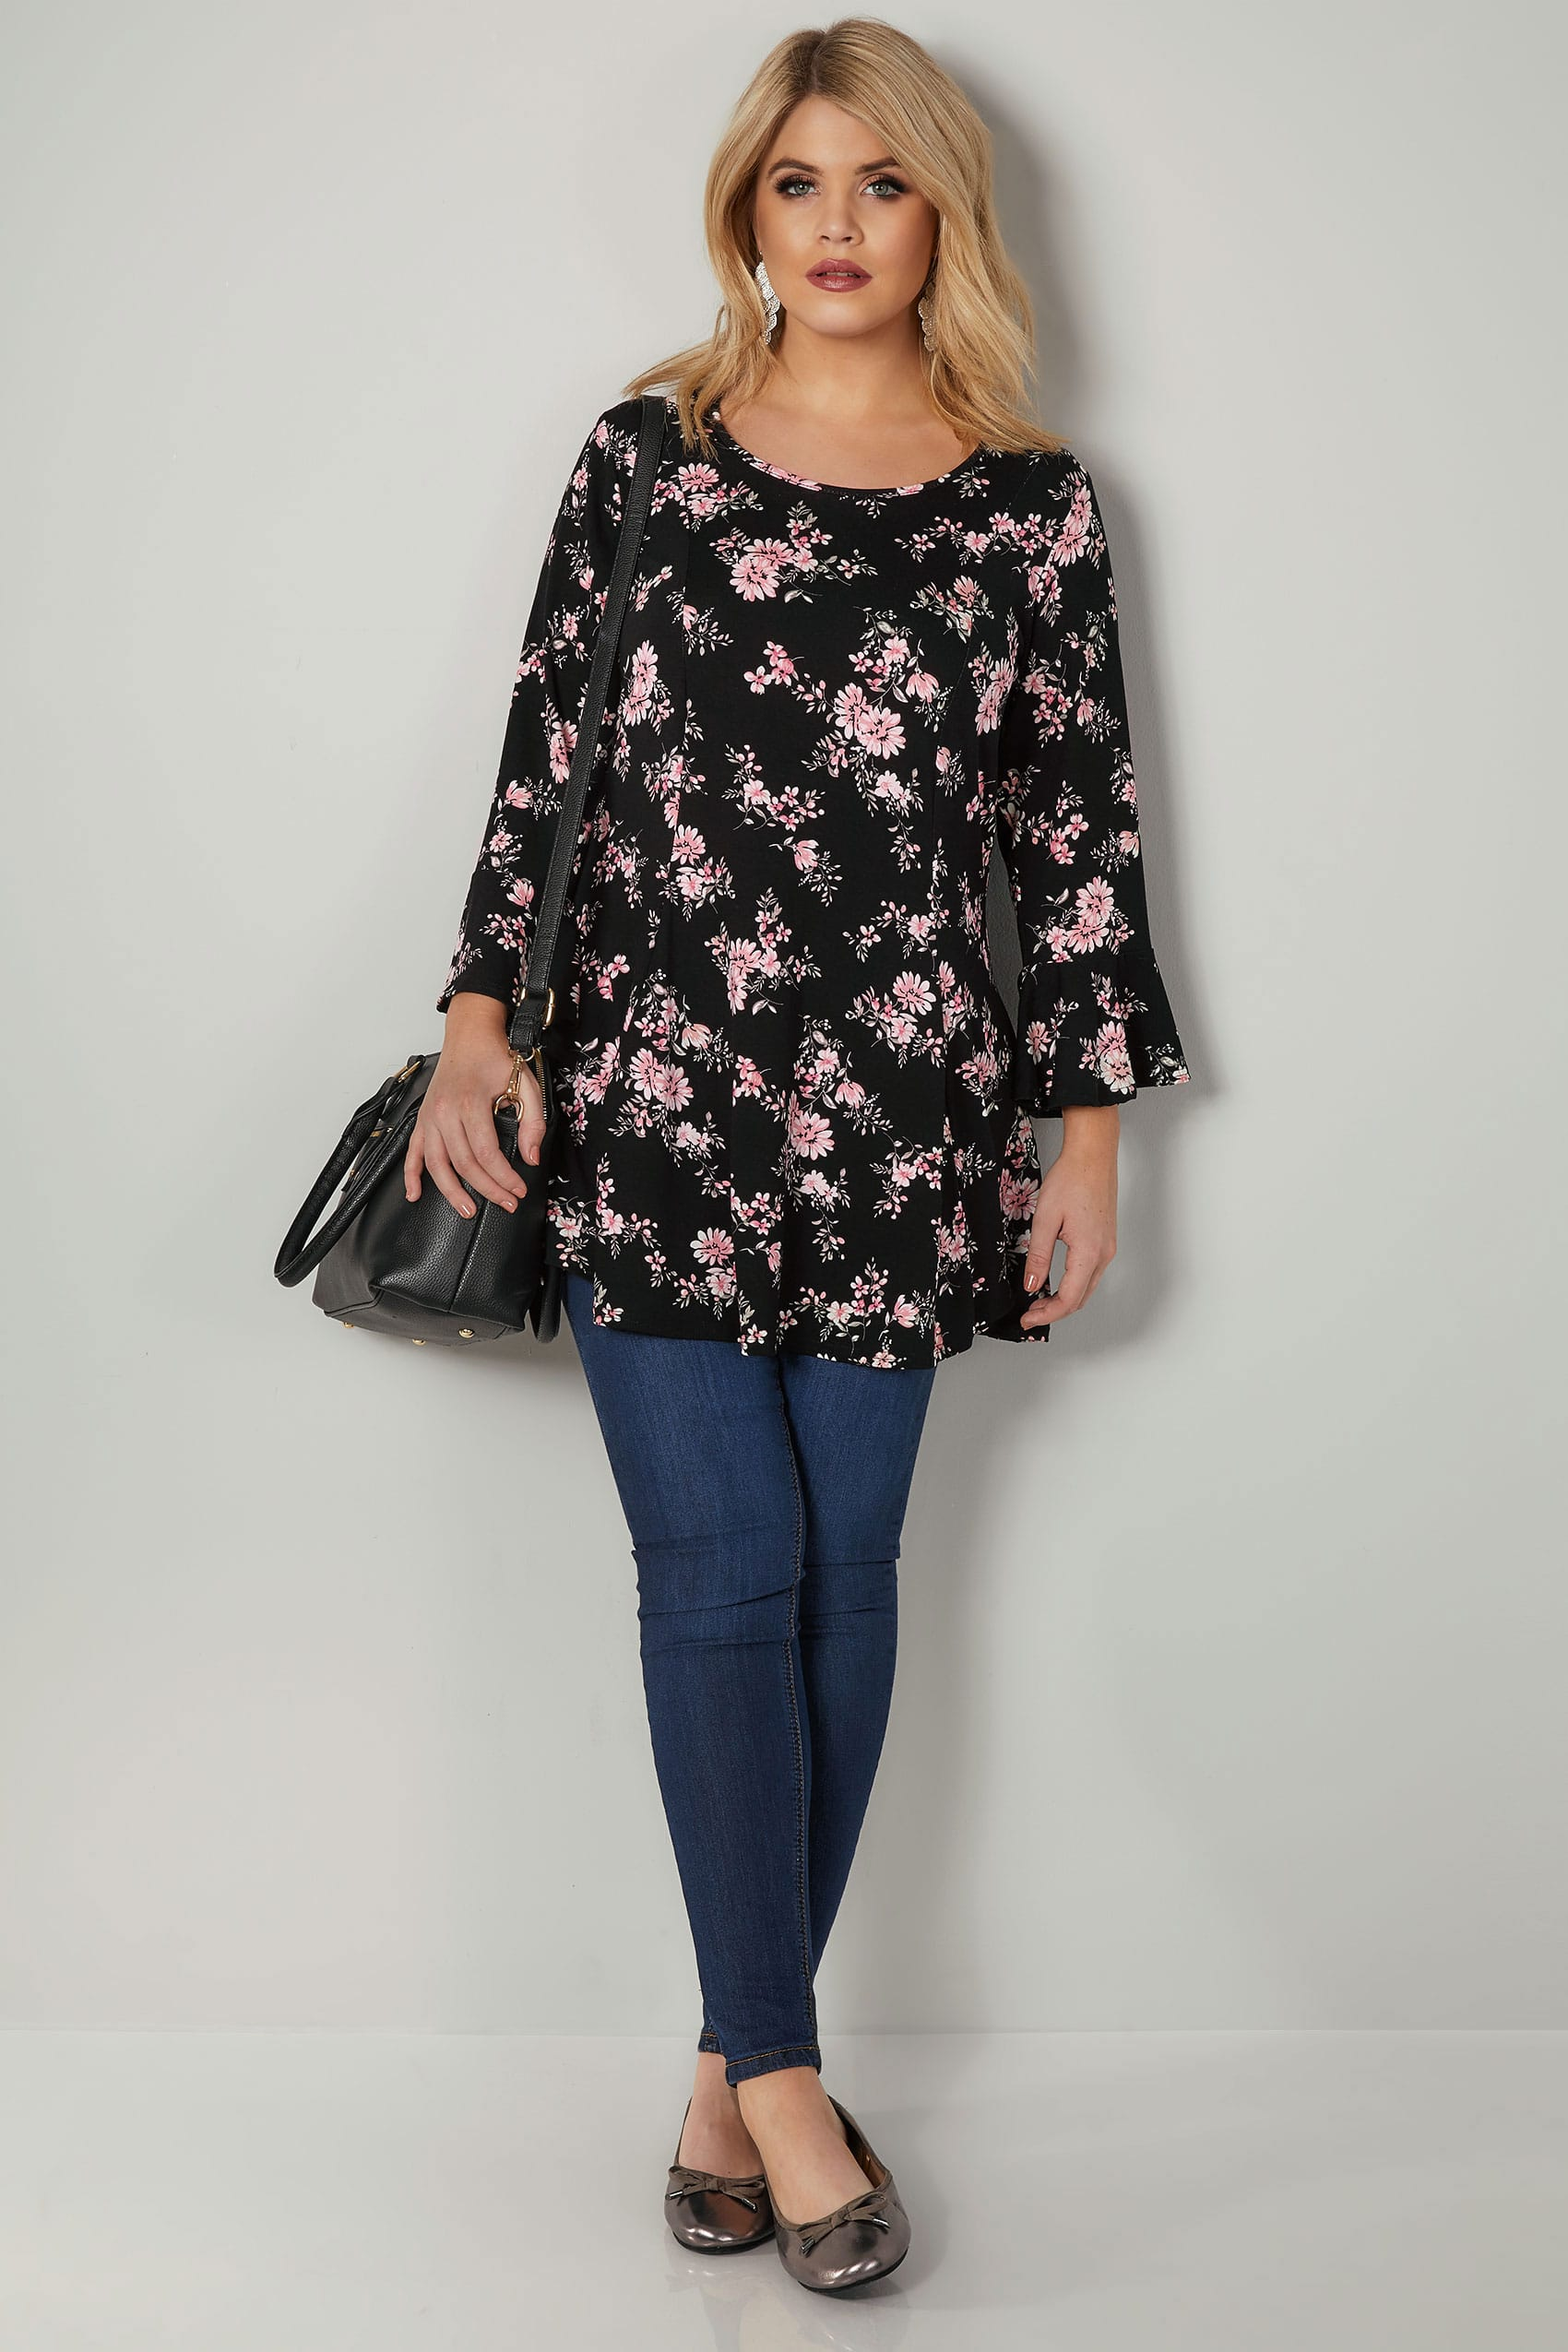 11aff57eed85a4 Black & Pink Floral Print Longline Peplum Top With Flute Sleeves ...